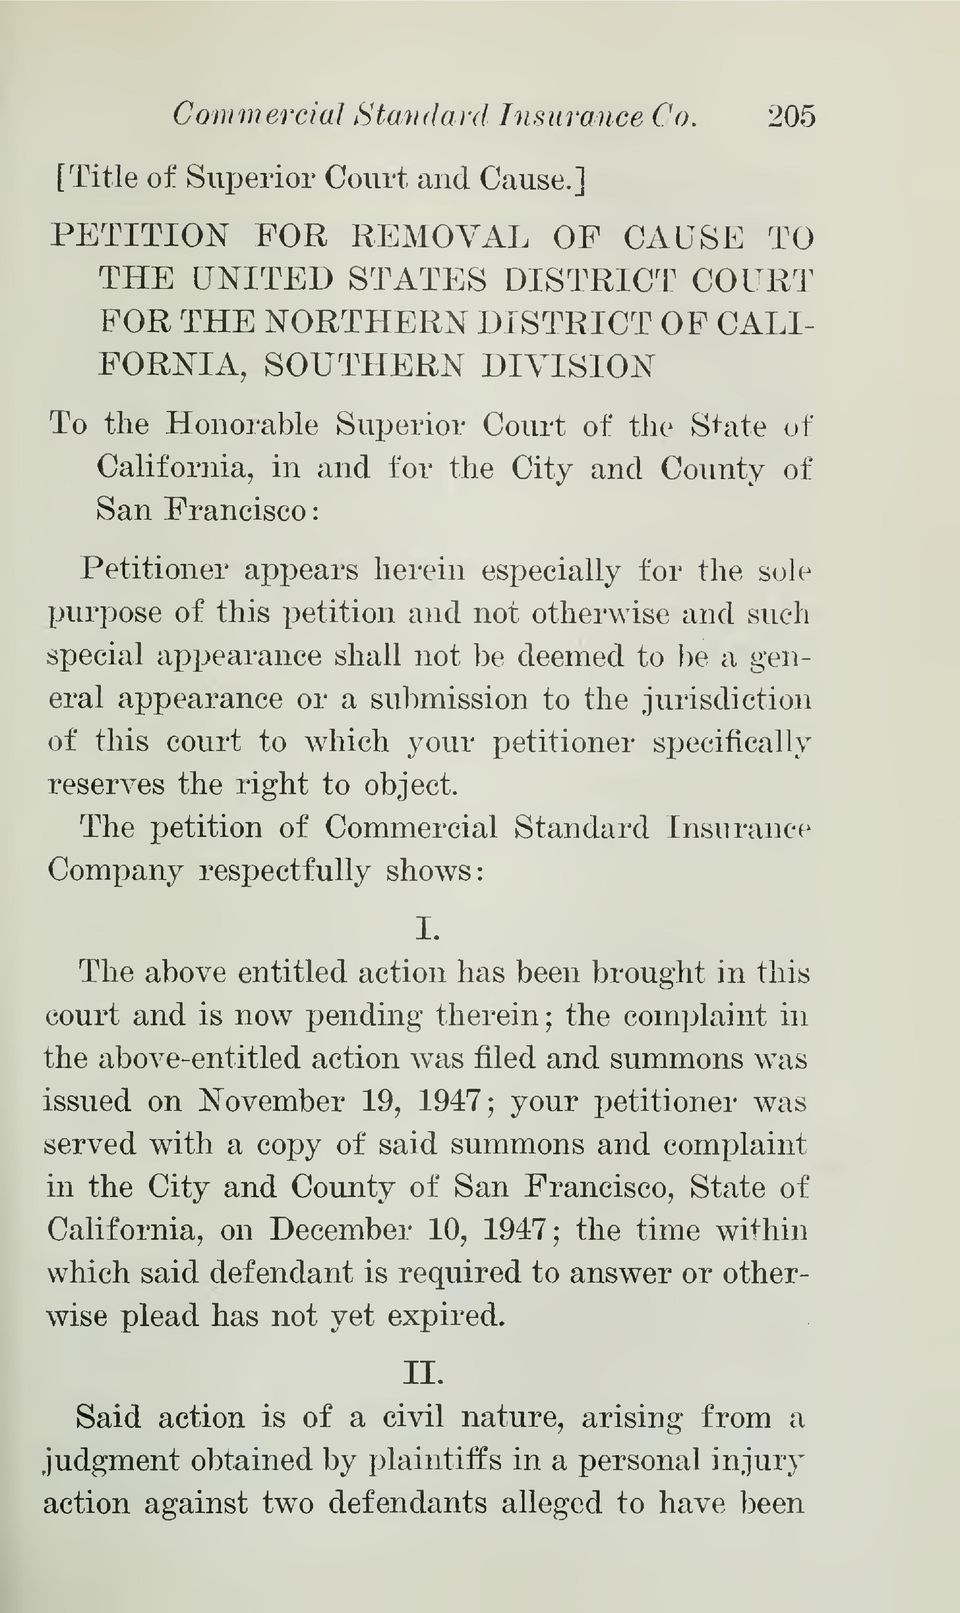 for the City and County of San Francisco Petitioner appears herein especially for the sole purpose of this petition and not otherwise and such special appearance shall not be deemed to be a general